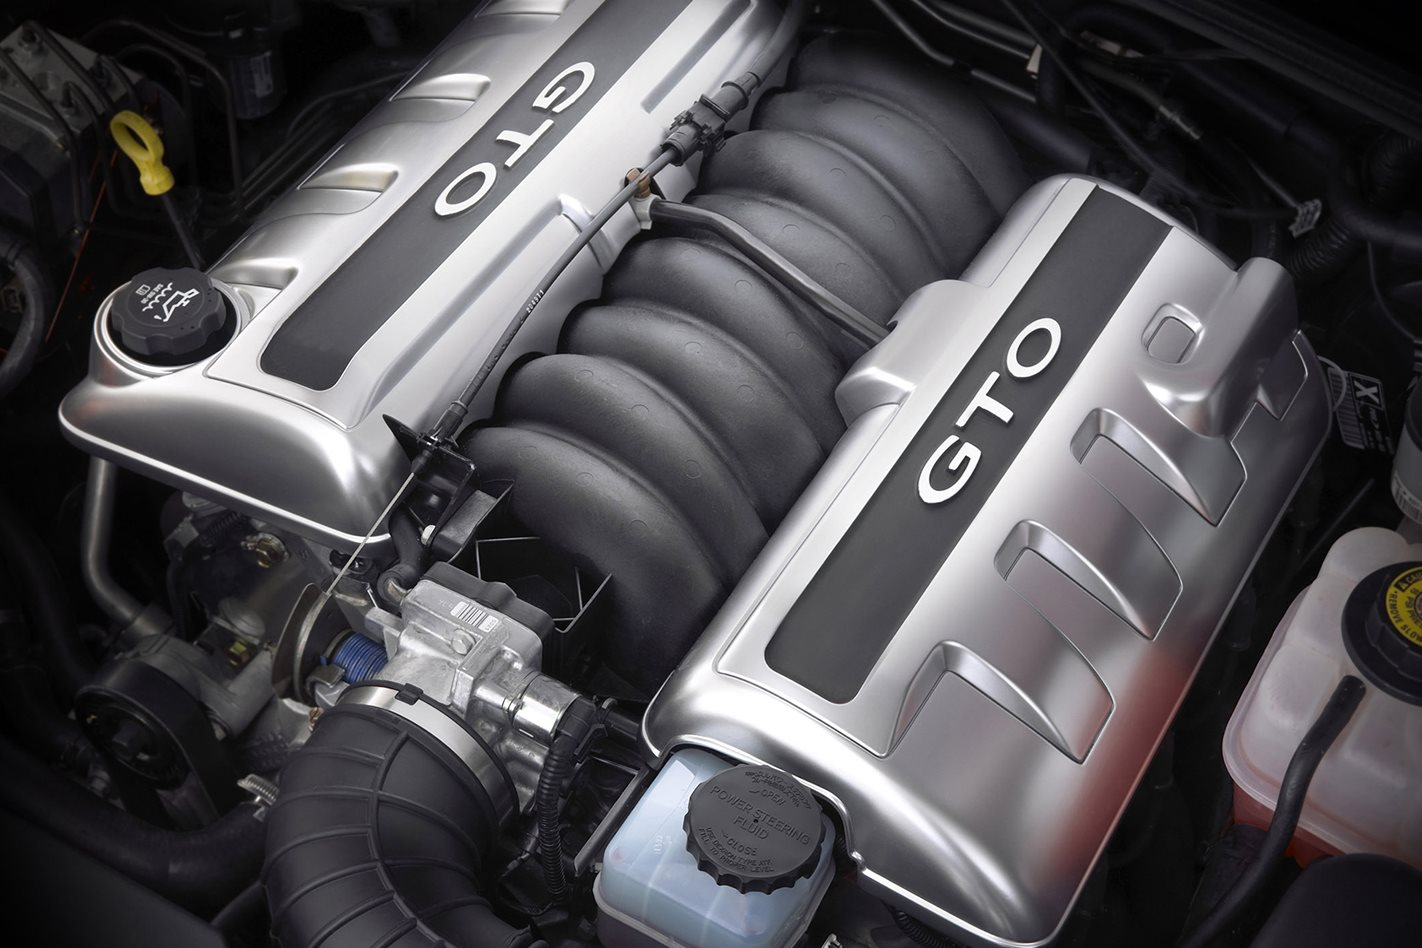 2004-Pontiac-GTO-engine.jpg